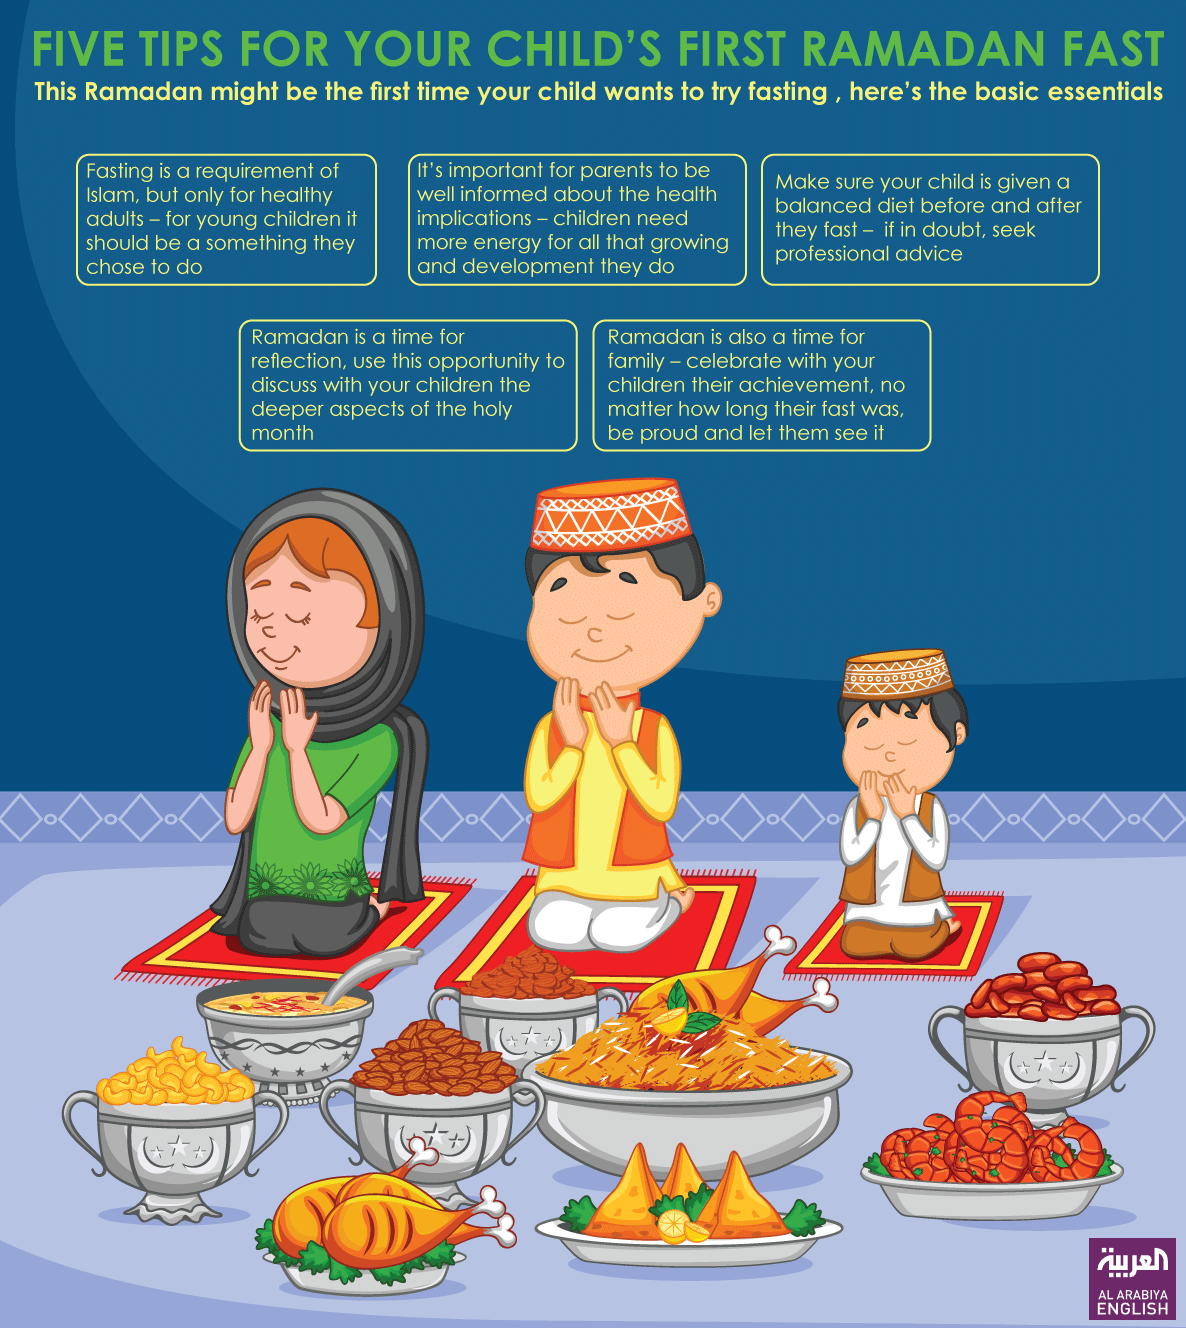 Infographic: Five tips for your child's first Ramadan fast